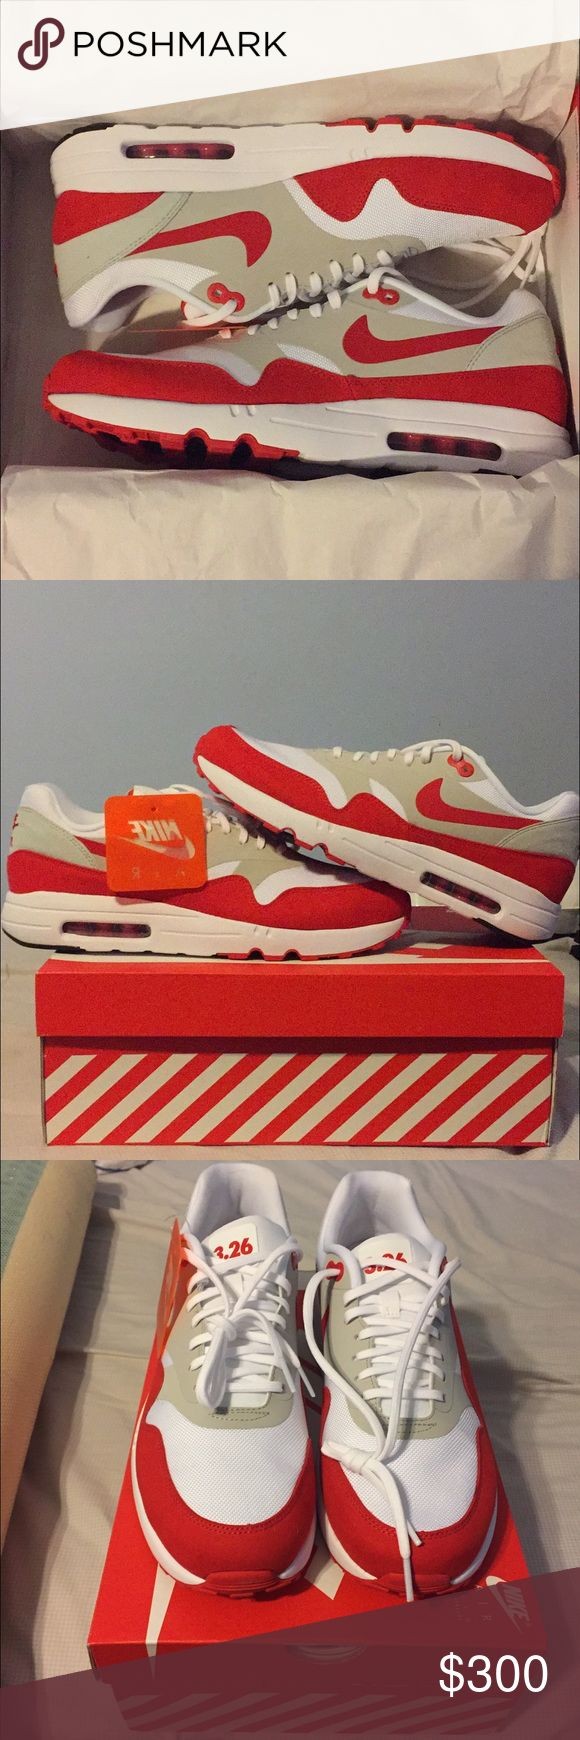 Nike Air Max 1 Ultra (Air Max Day) Limited edition, Nike air max 1 ultra, released exclusively for Air Max Day 2017. Nike Shoes Sneakers